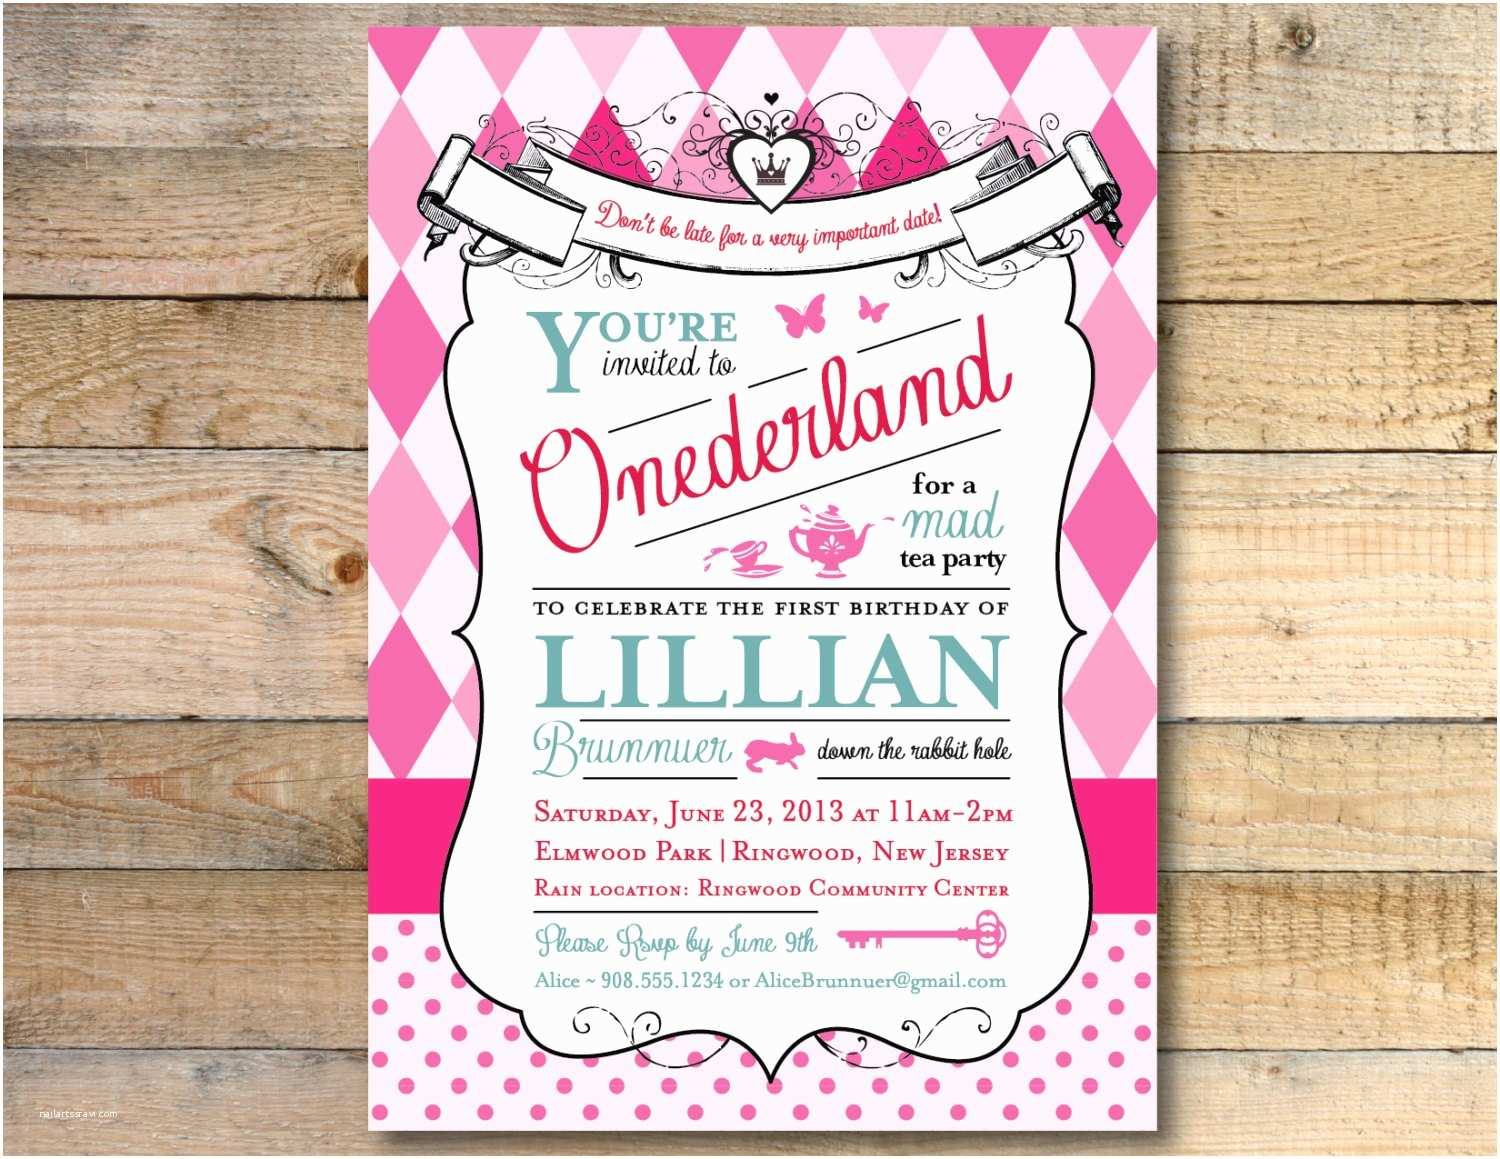 Alice In Wonderland Party Invitations Wonderful Alice In Wonderland Birthday Party Invitations